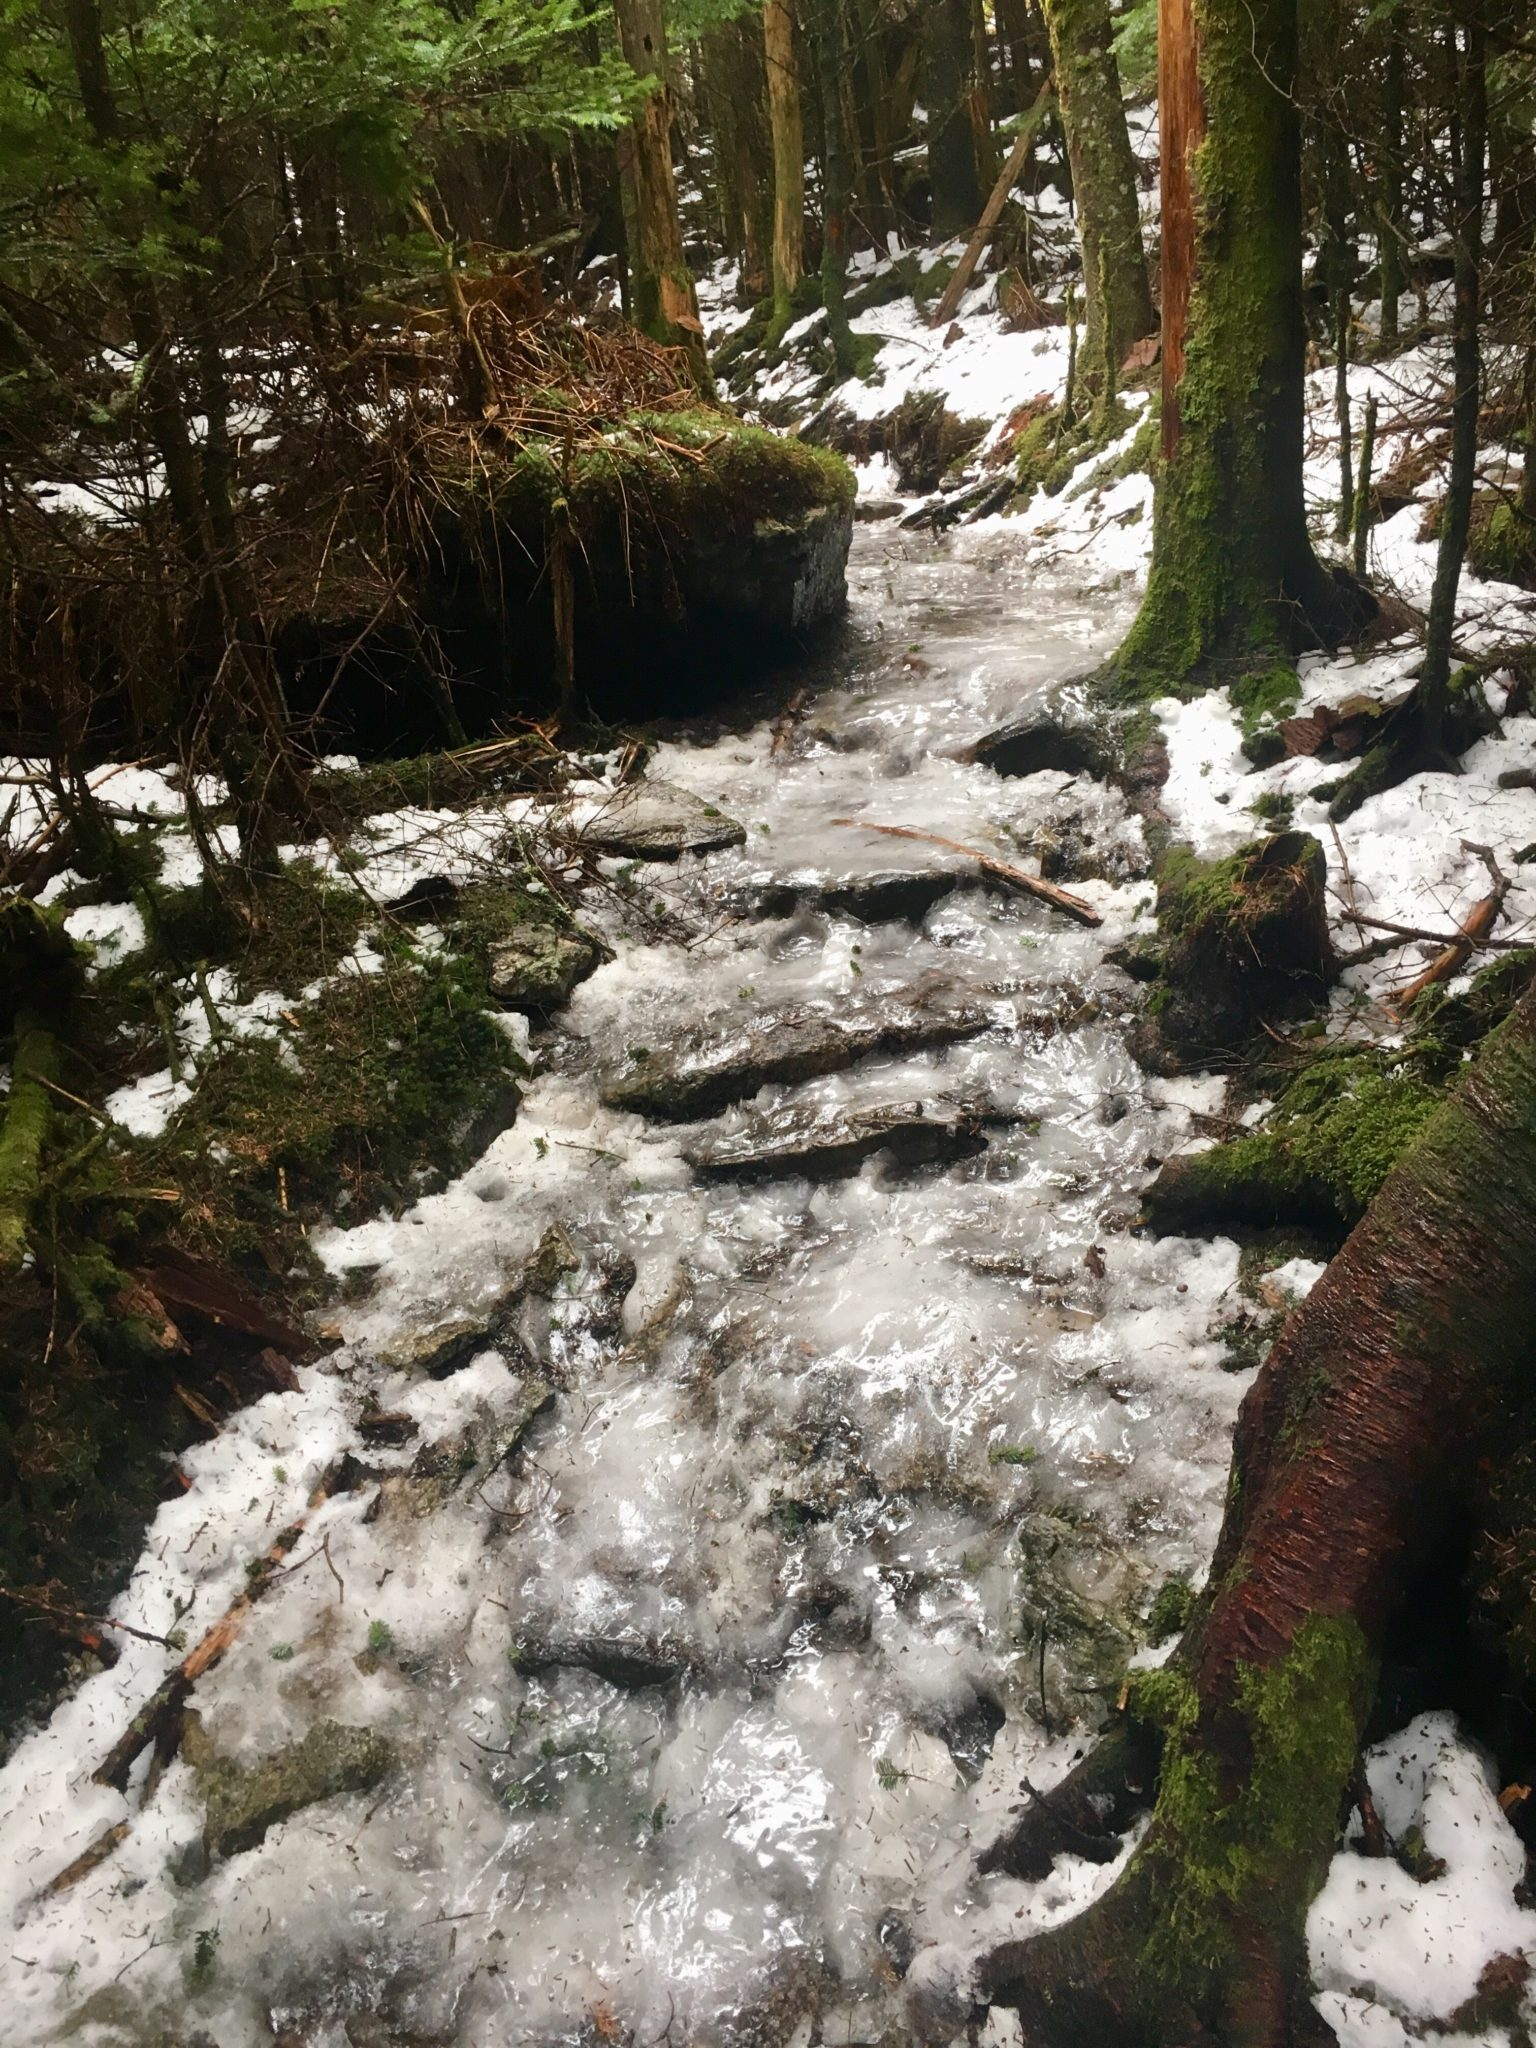 The trail was a river of ice